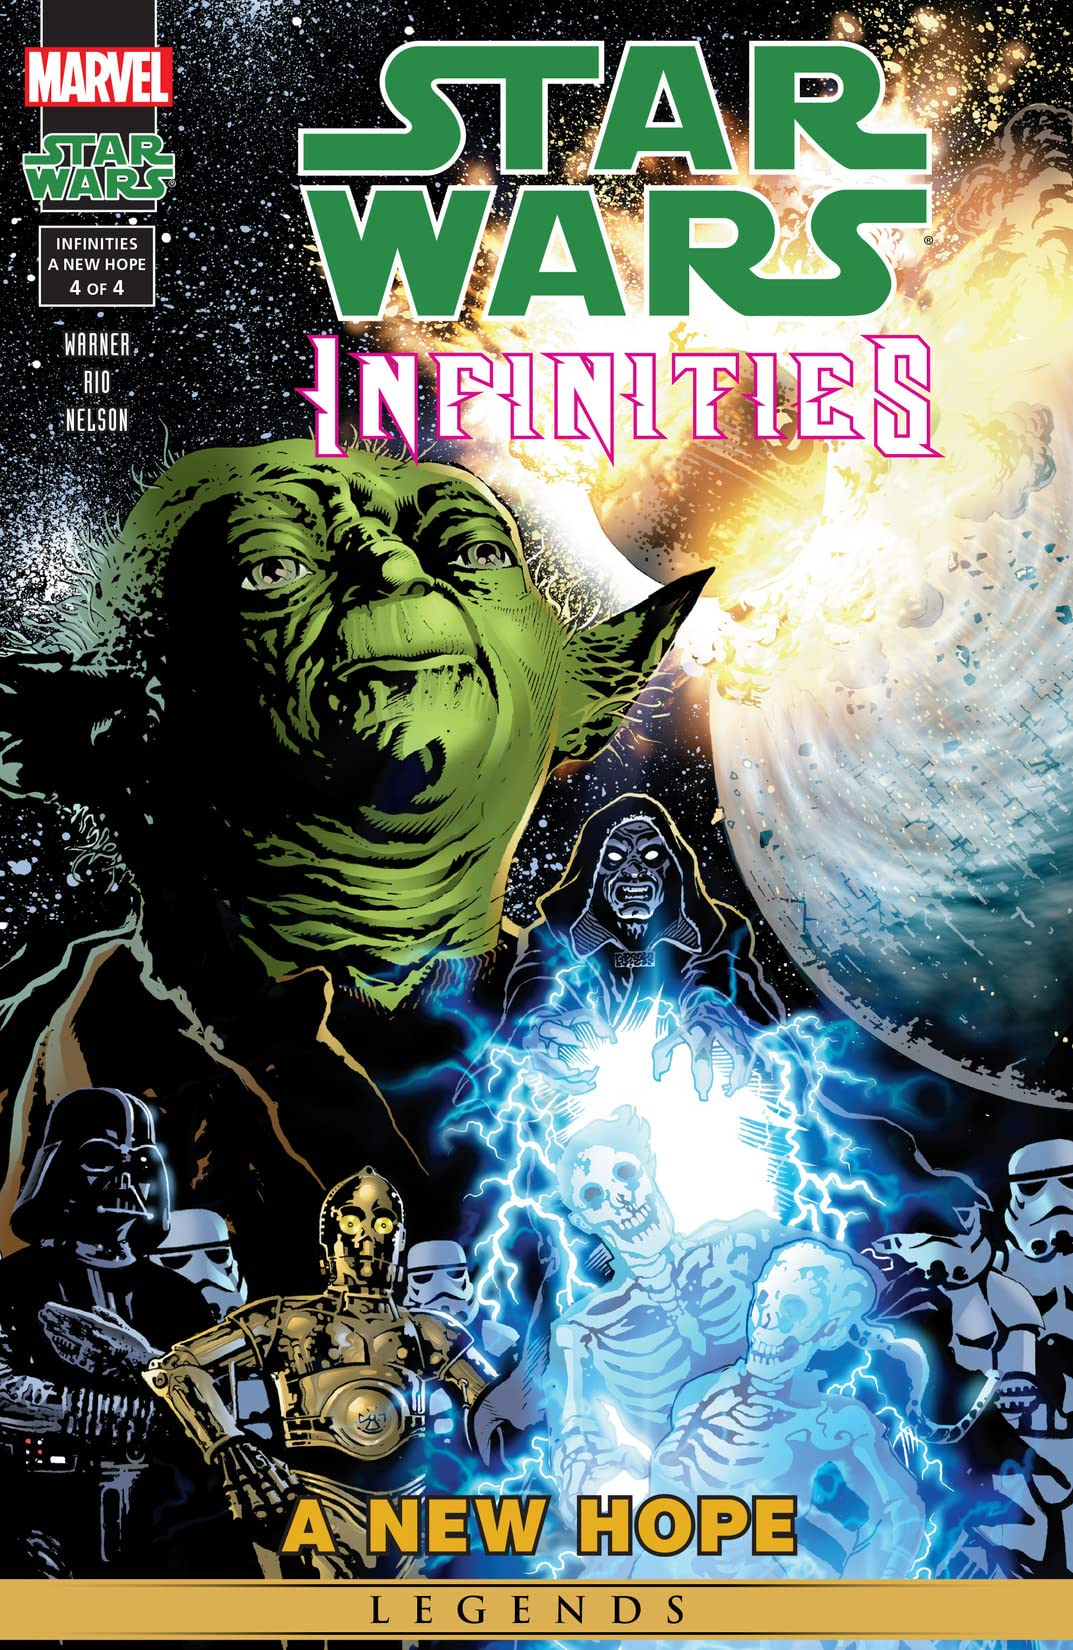 Star Wars Infinities: A New Hope #4 (of 4) - Comics by comiXology